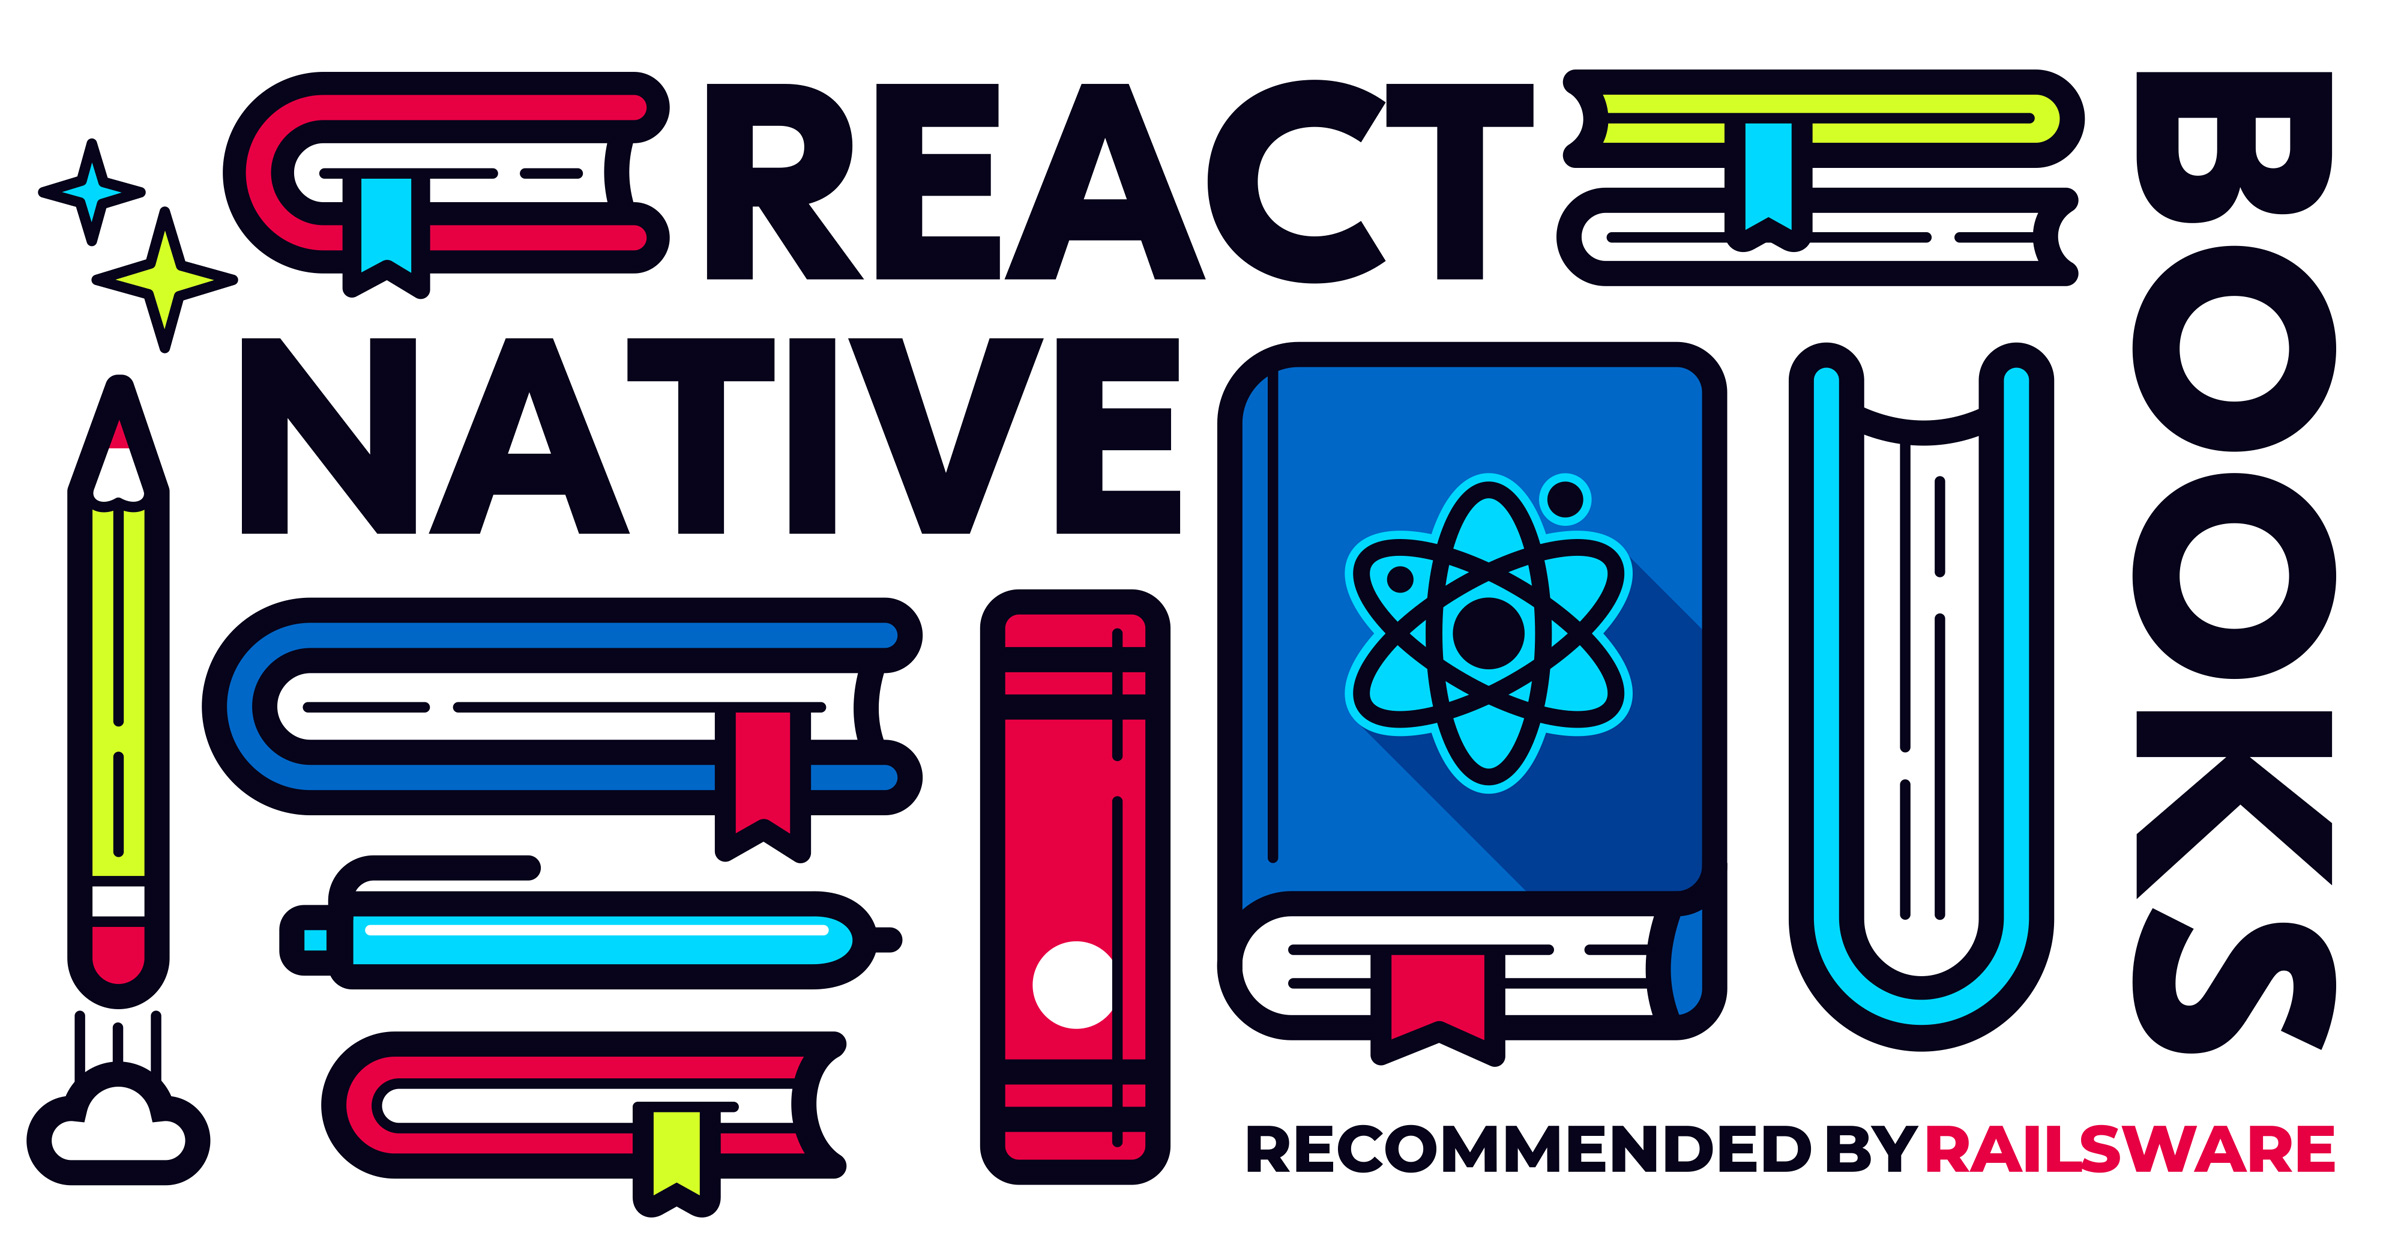 8 React Native Books to Help You Master the Technology